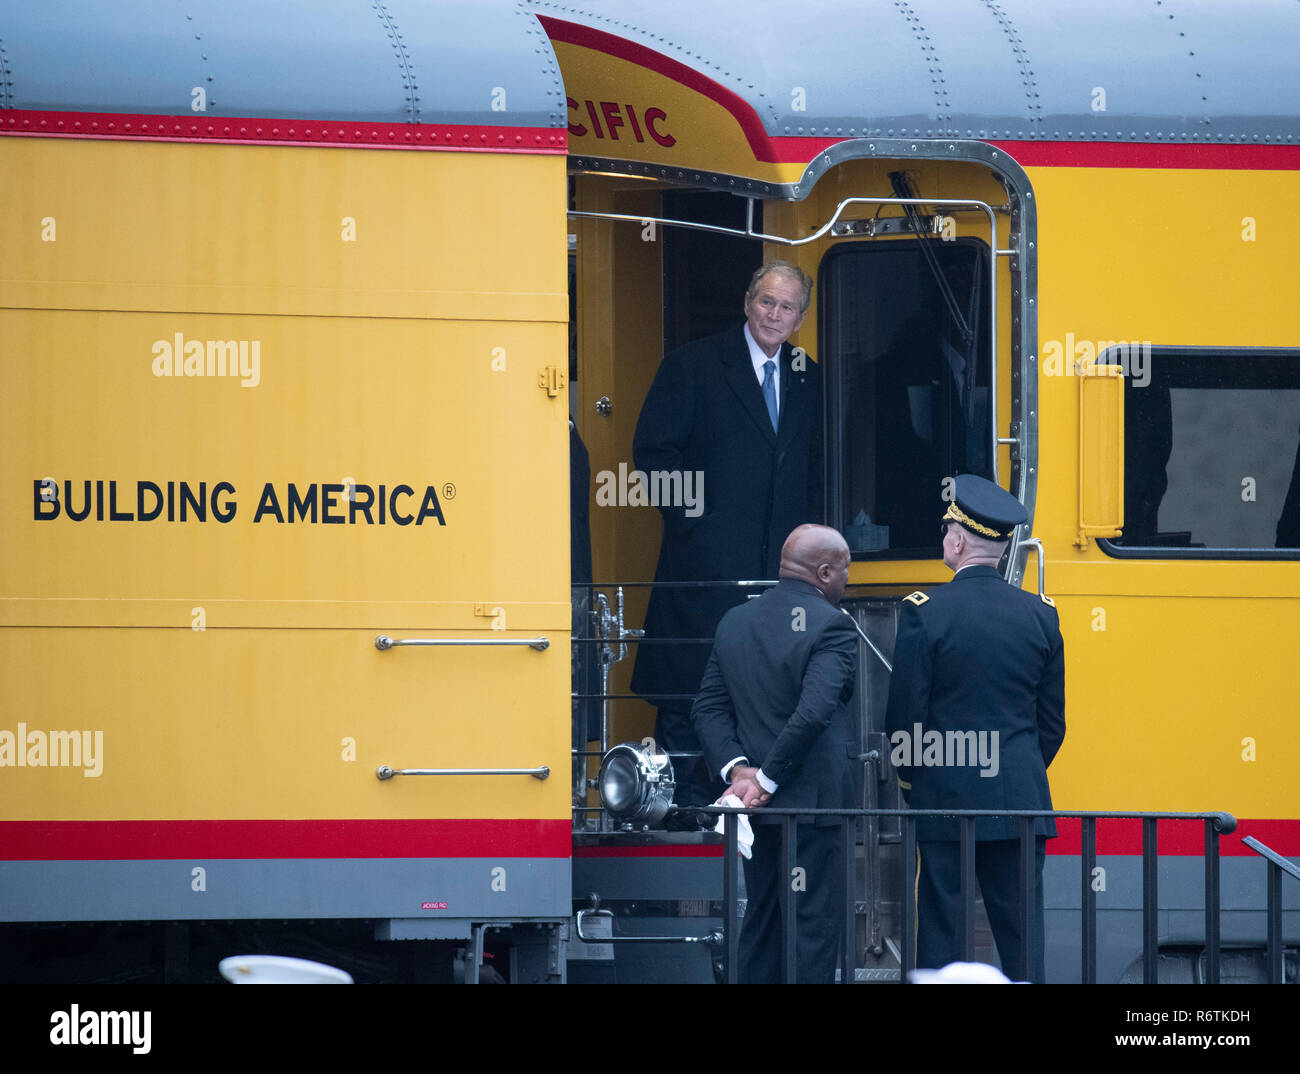 Former Pres. George W. Bush steps off train carrying the casket of his father, former President George H.W. Bush, upon its arrival at Texas A&M University before burial at the nearby George Bush Library. Stock Photo